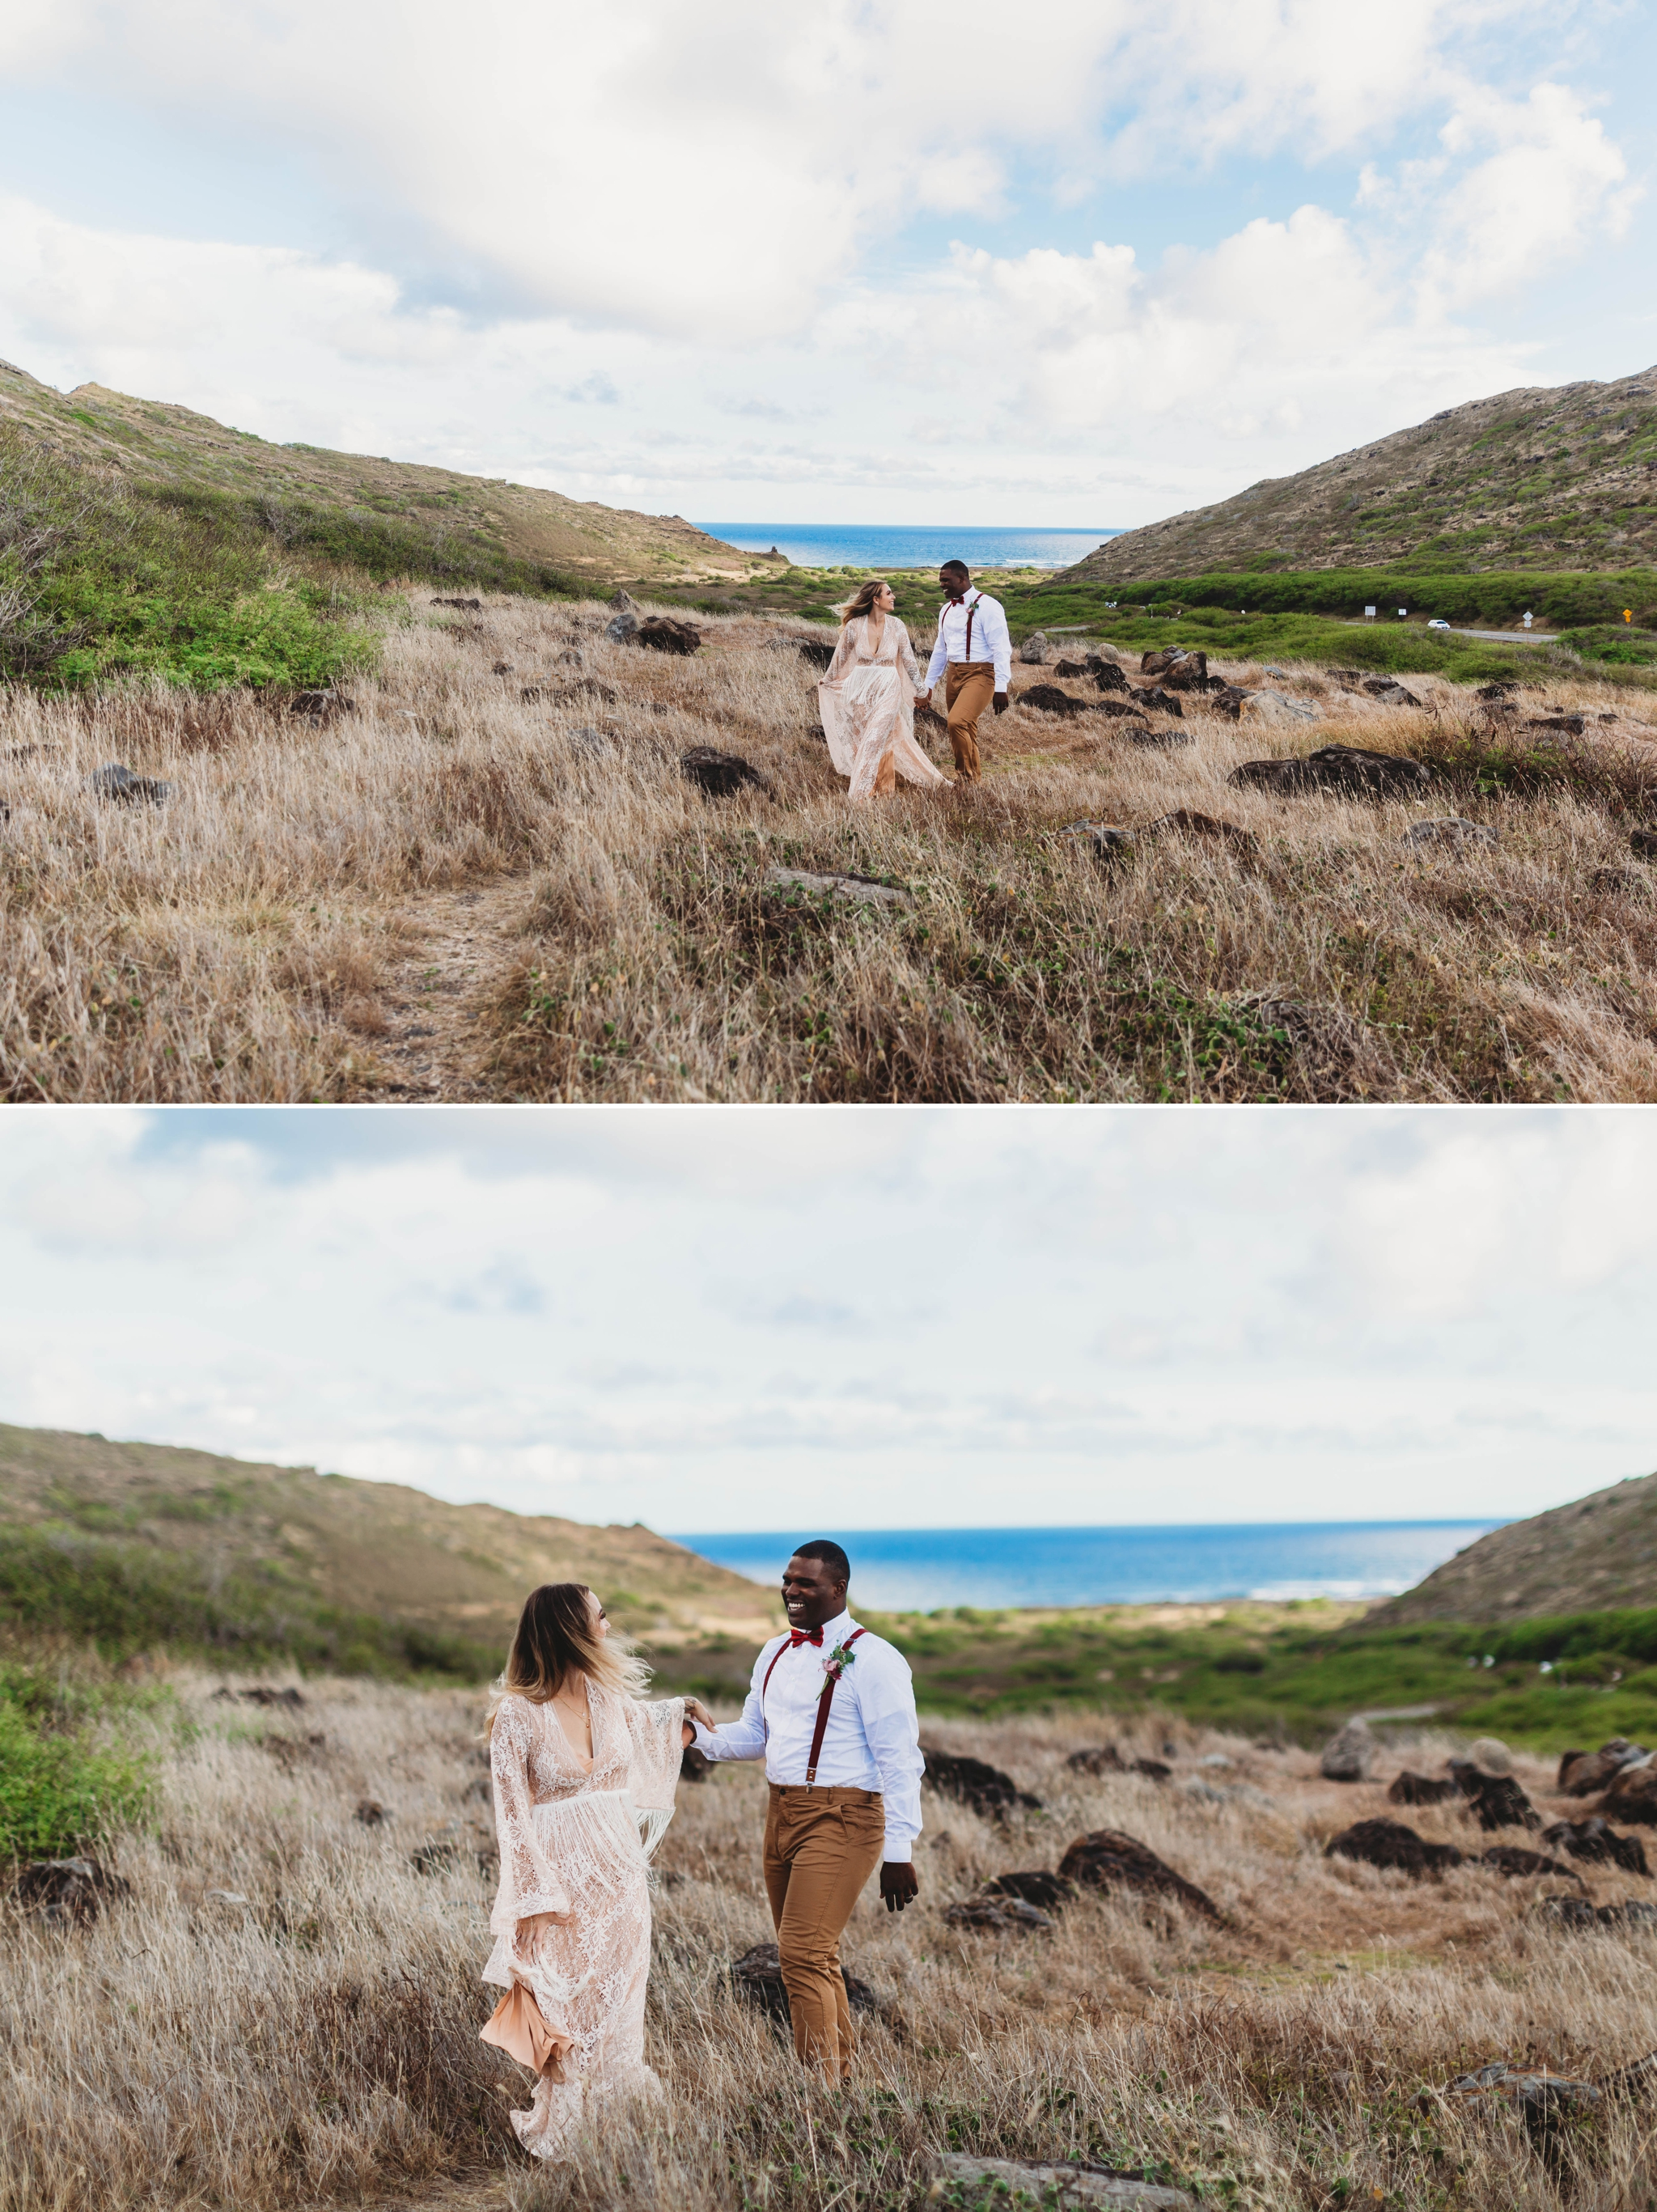 groom leading his bride down a grassy path - Elopement at Makapuu Lookout, Waimanalo, HI - Oahu Hawaii Engagement Photographer - Bride in a flowy fringe boho wedding dress - in grassy mountains with the ocean in the back - lanikai lookout - deutsche hochzeits fotografin in hawaii - smal1  - dark and moody - true to live